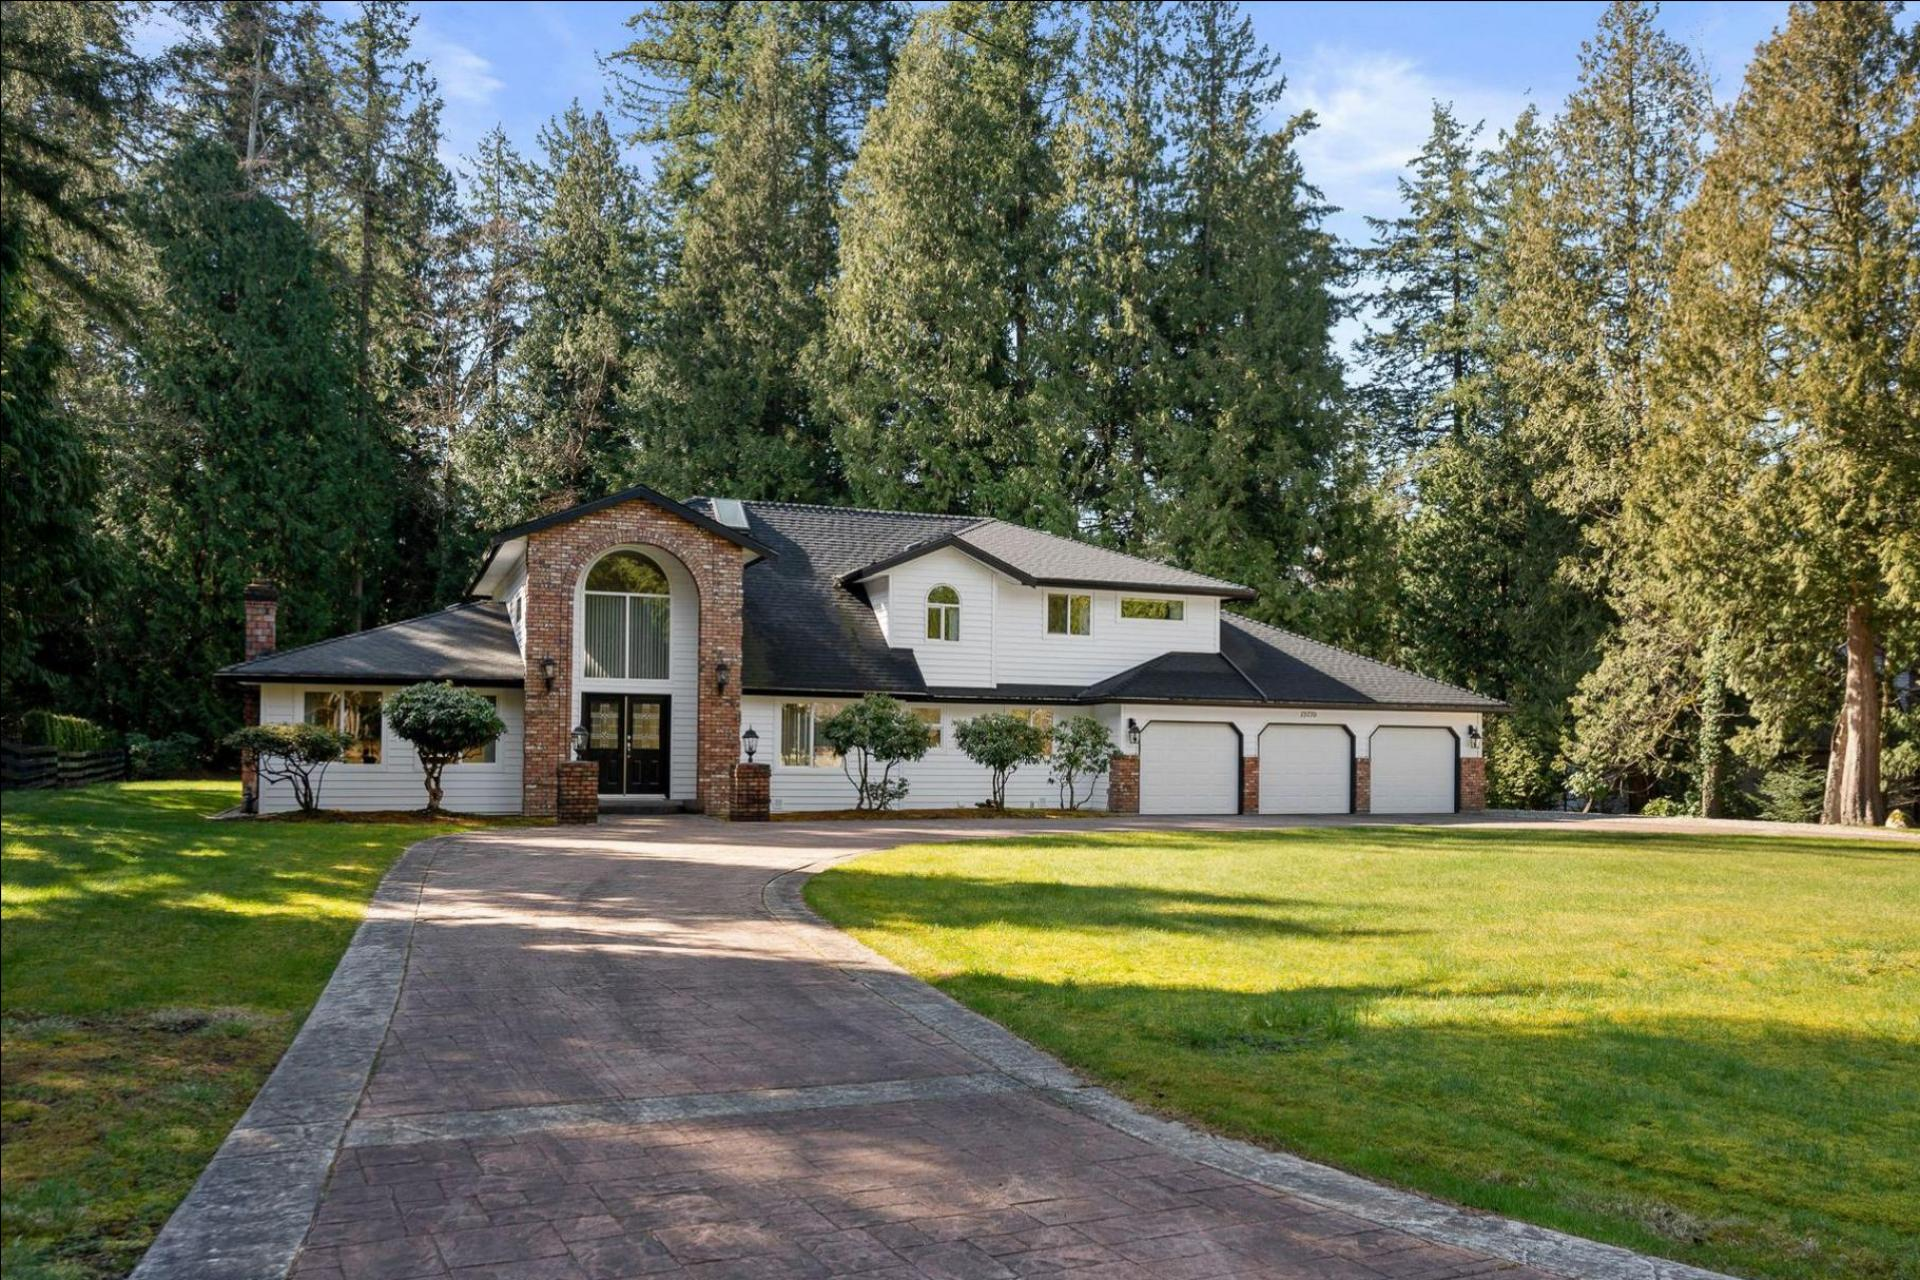 13770 31 Avenue, Elgin Chantrell, South Surrey White Rock